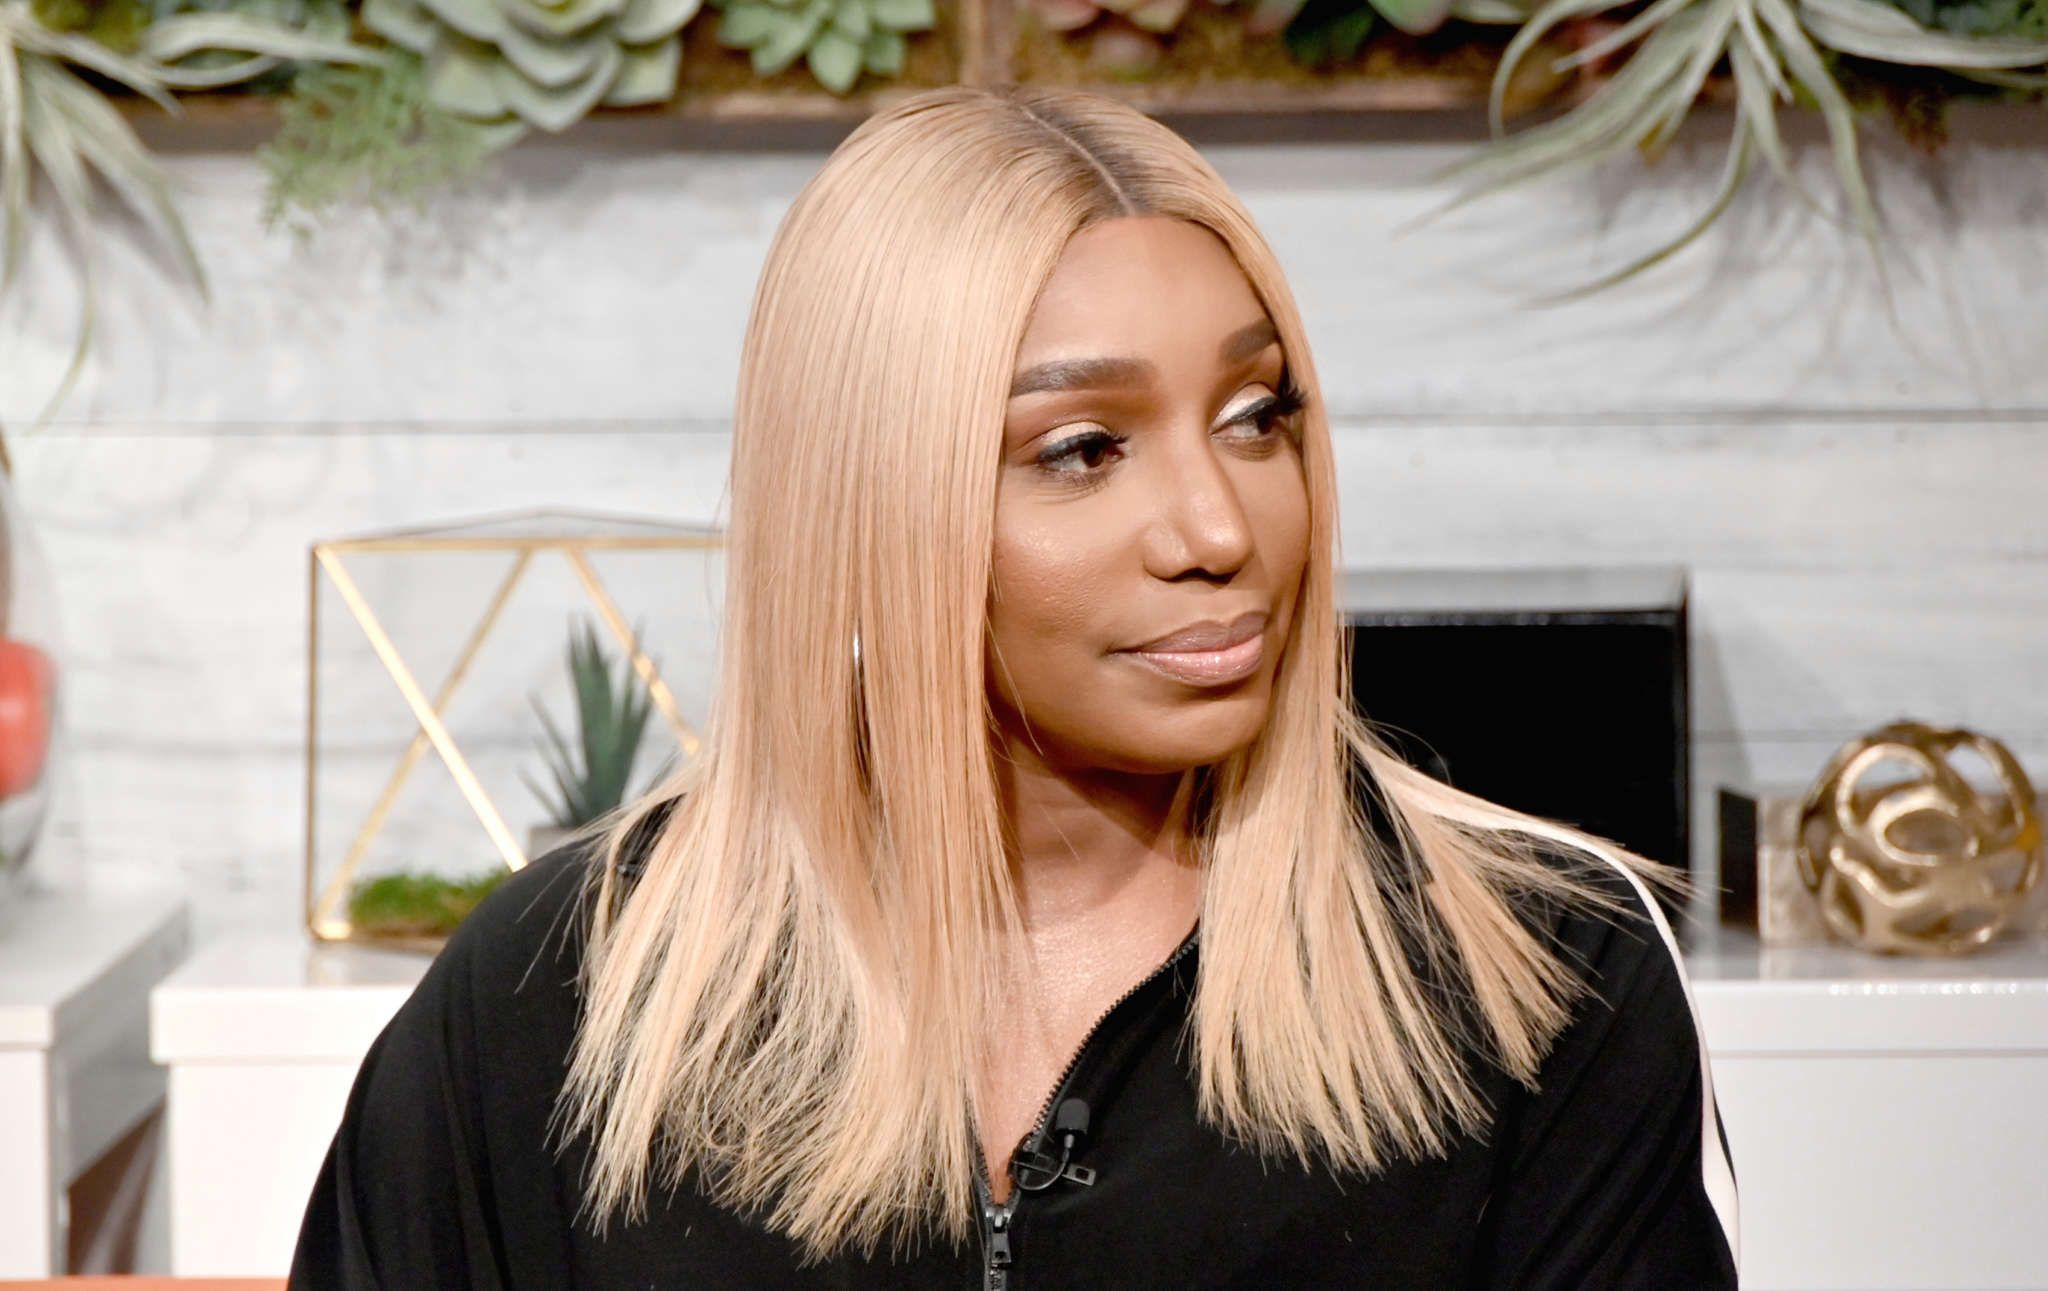 NeNe Leakes Slammed After Posting No-Makeup Selfie - Hater Says She Looks 'Like A Totally Different Person' #Instagram, #NeneLeakes, #RealHousewives, #Rhoa celebrityinsider.org #Entertainment #celebrityinsider #celebritynews #celebrities #celebrity